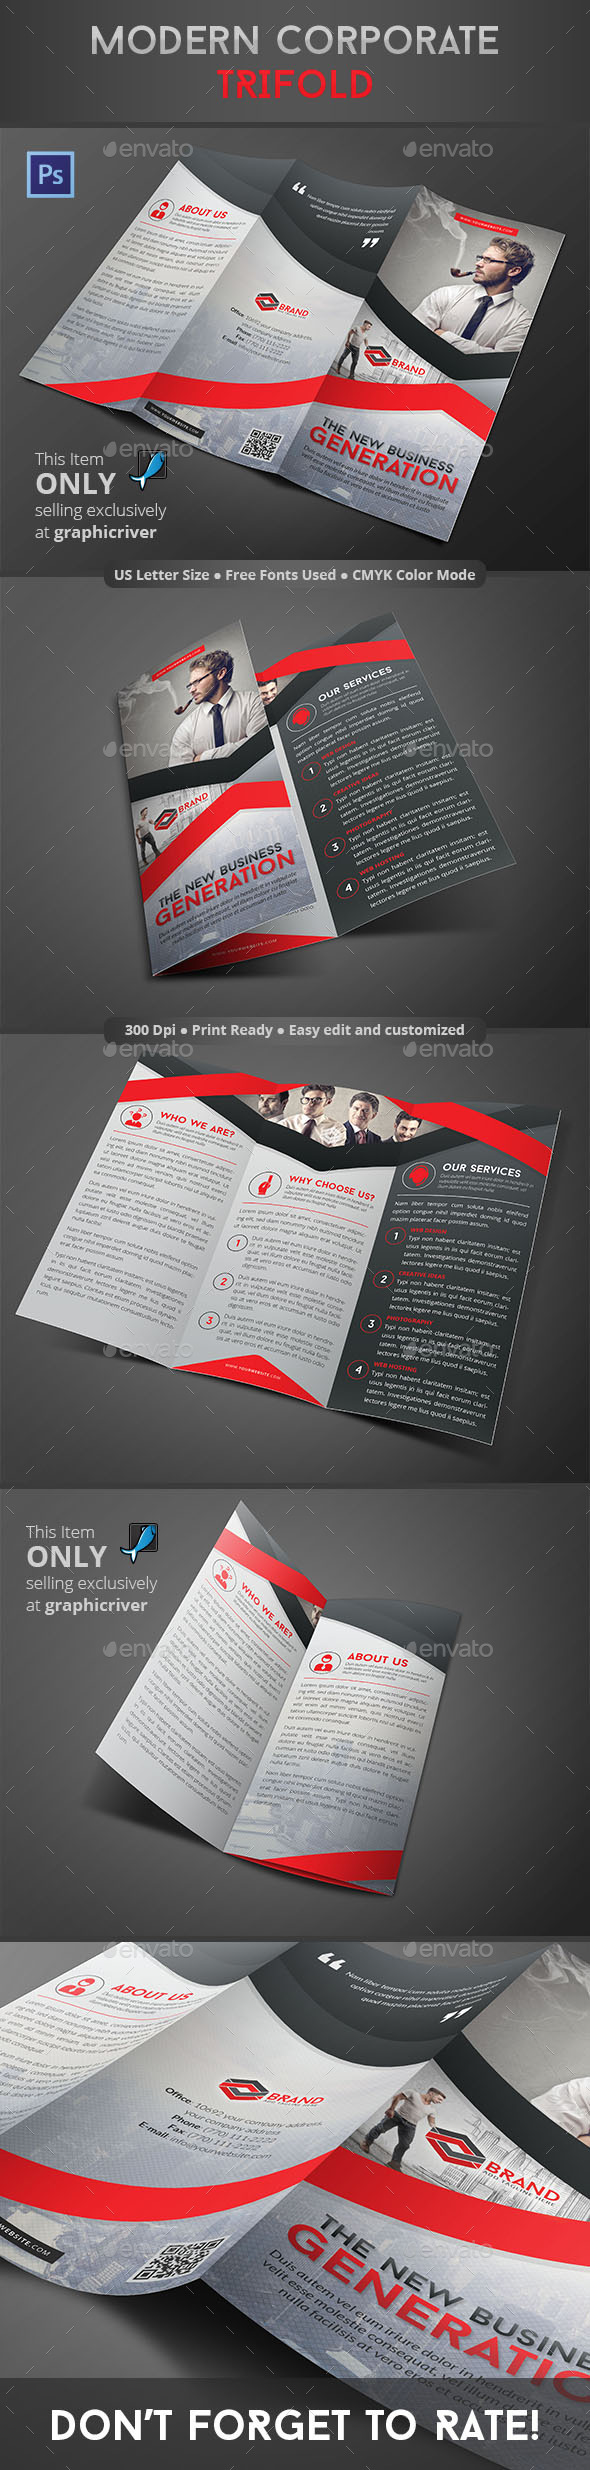 GraphicRiver Modern Corporate Trifold 8867365